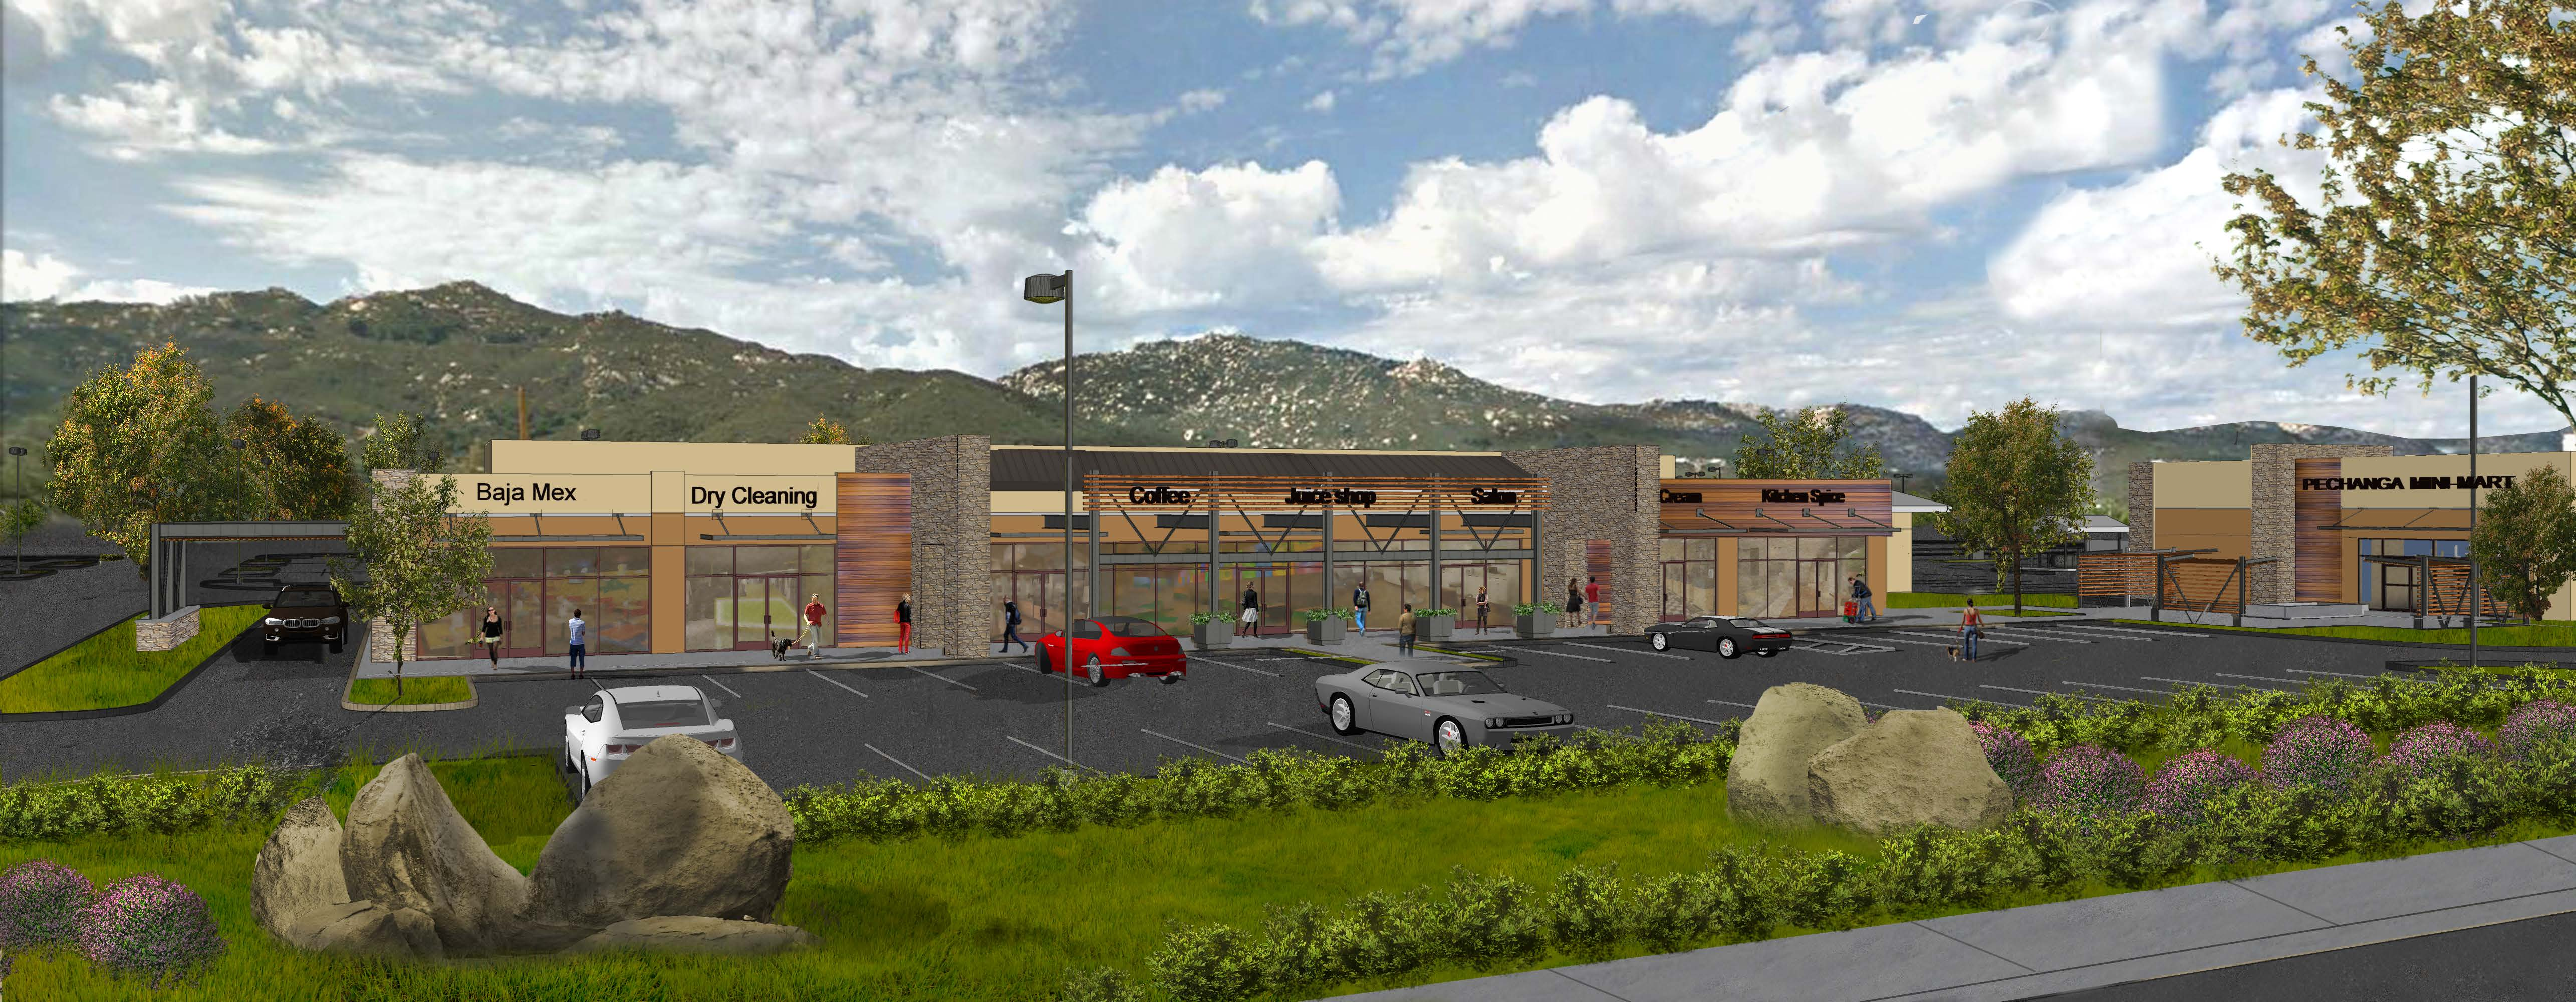 pechanga_retail-elevation